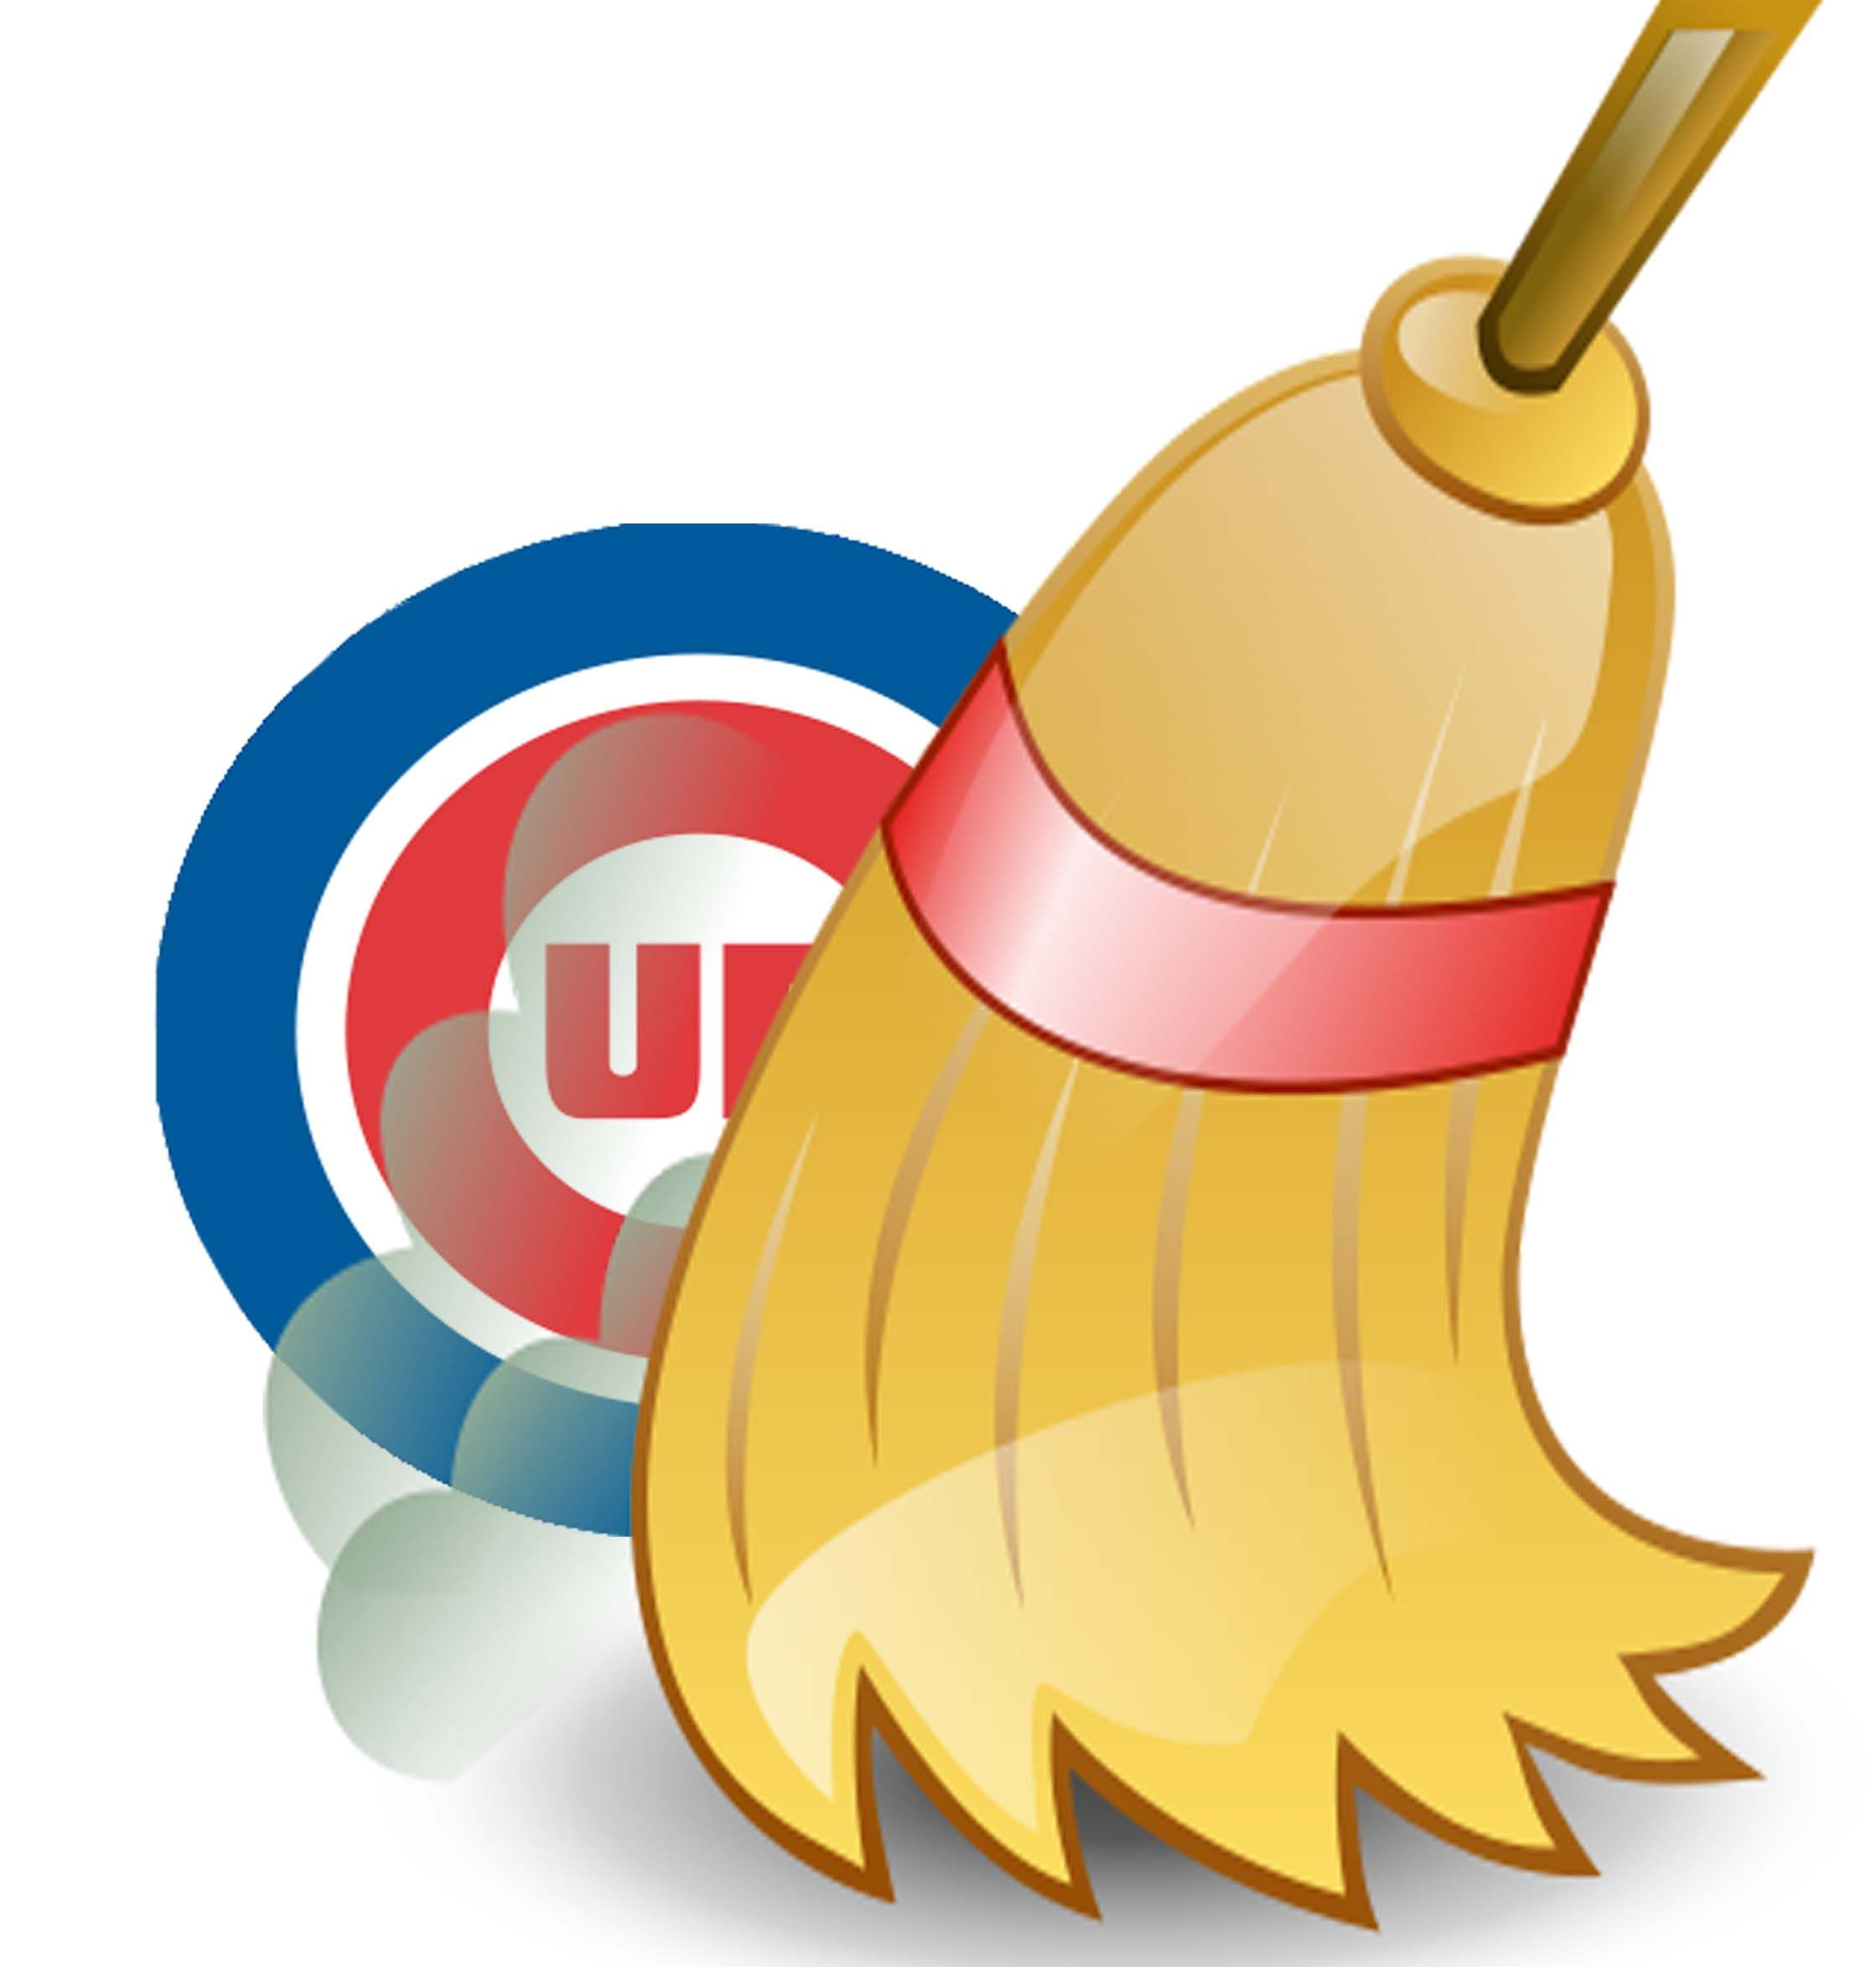 The cubs suck club